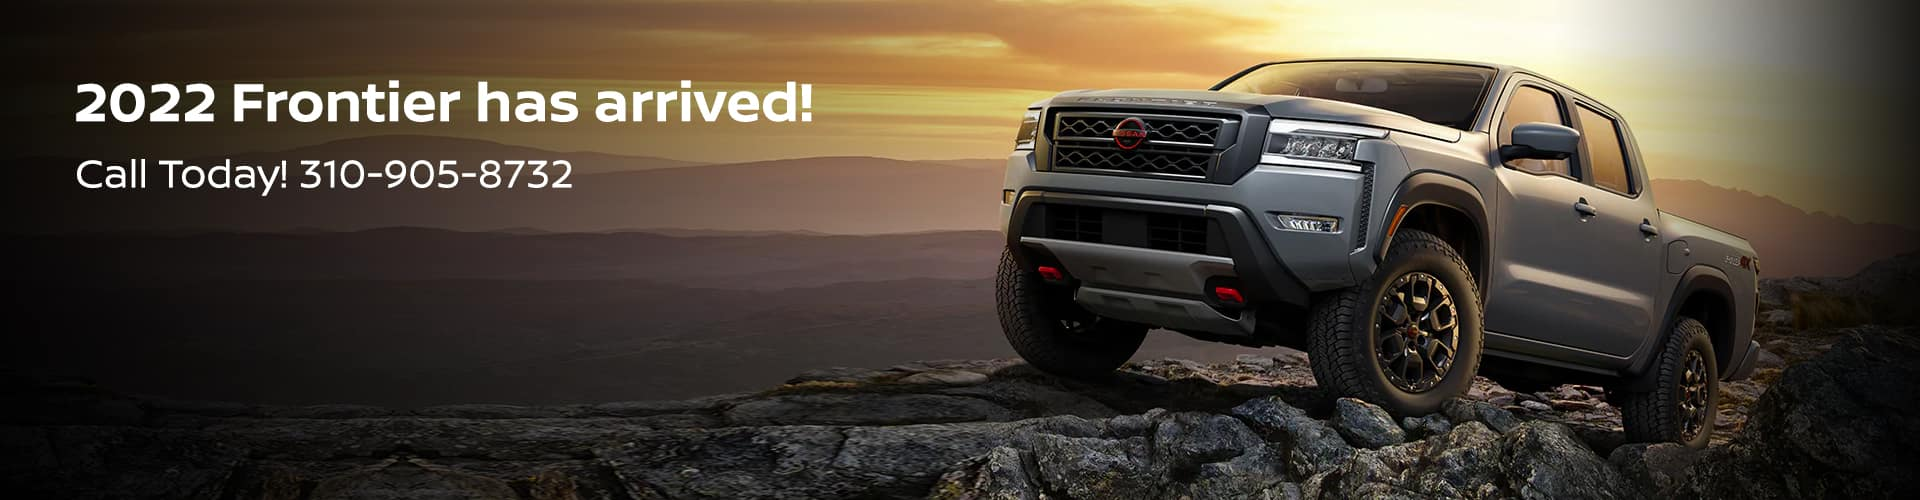 2022 Frontier has arrived! Call Today! 310-905-8732